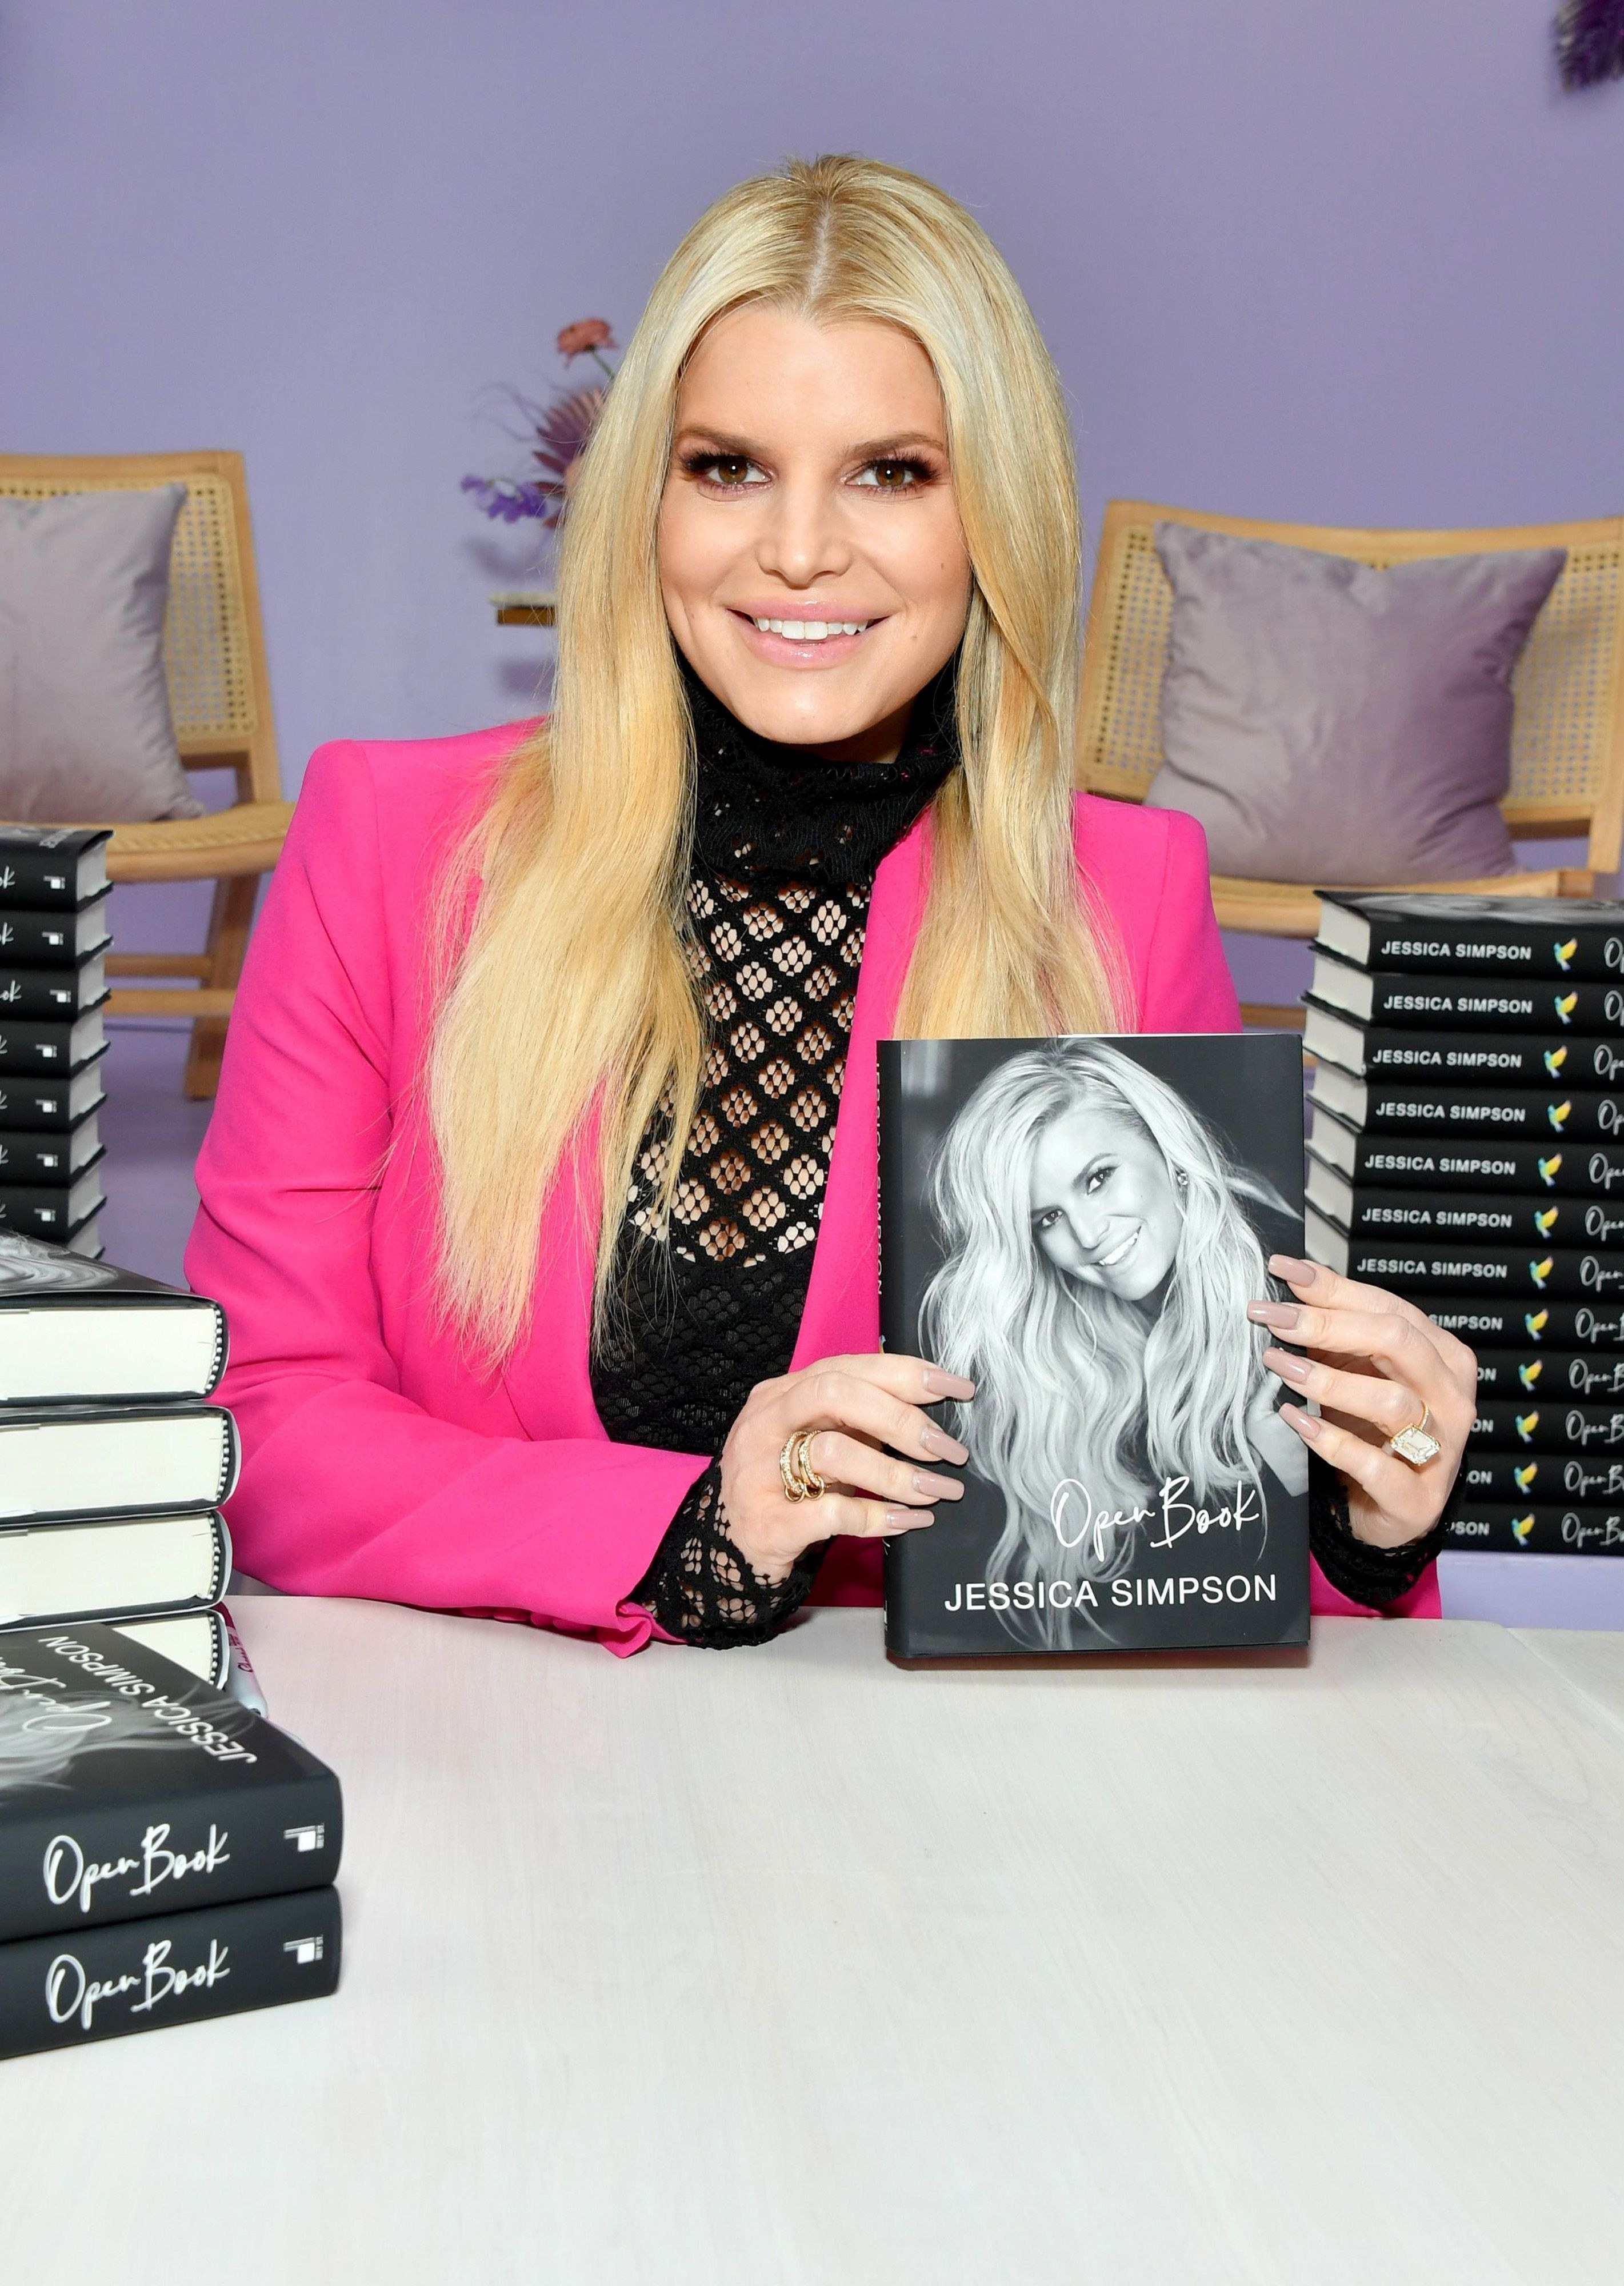 Jessica Simpson at a book signing